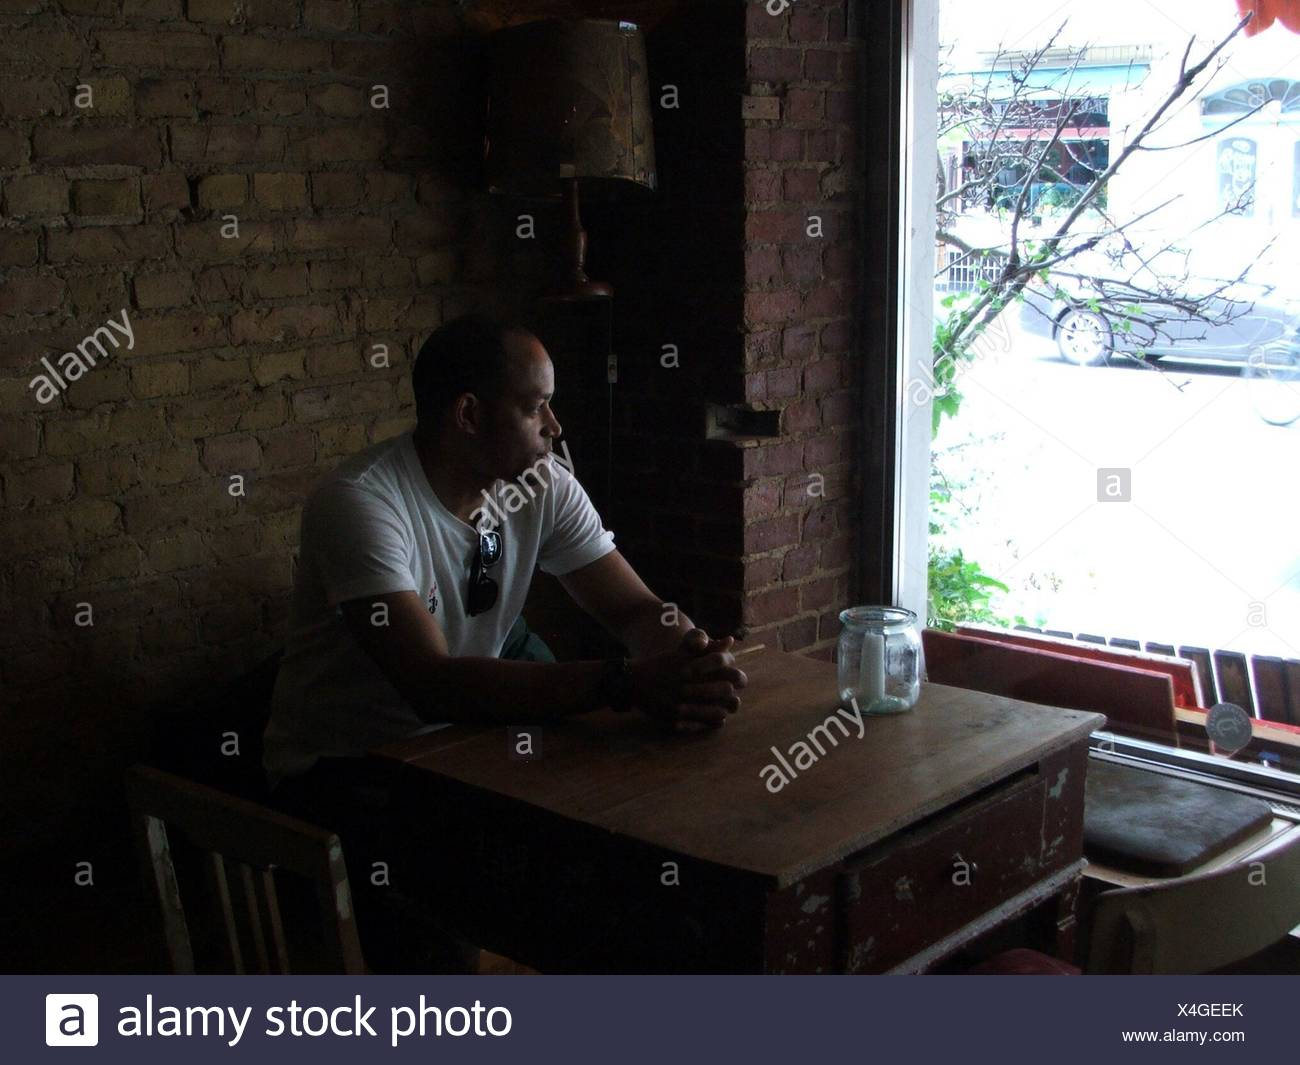 Man Sitting In Cafe - Stock Image